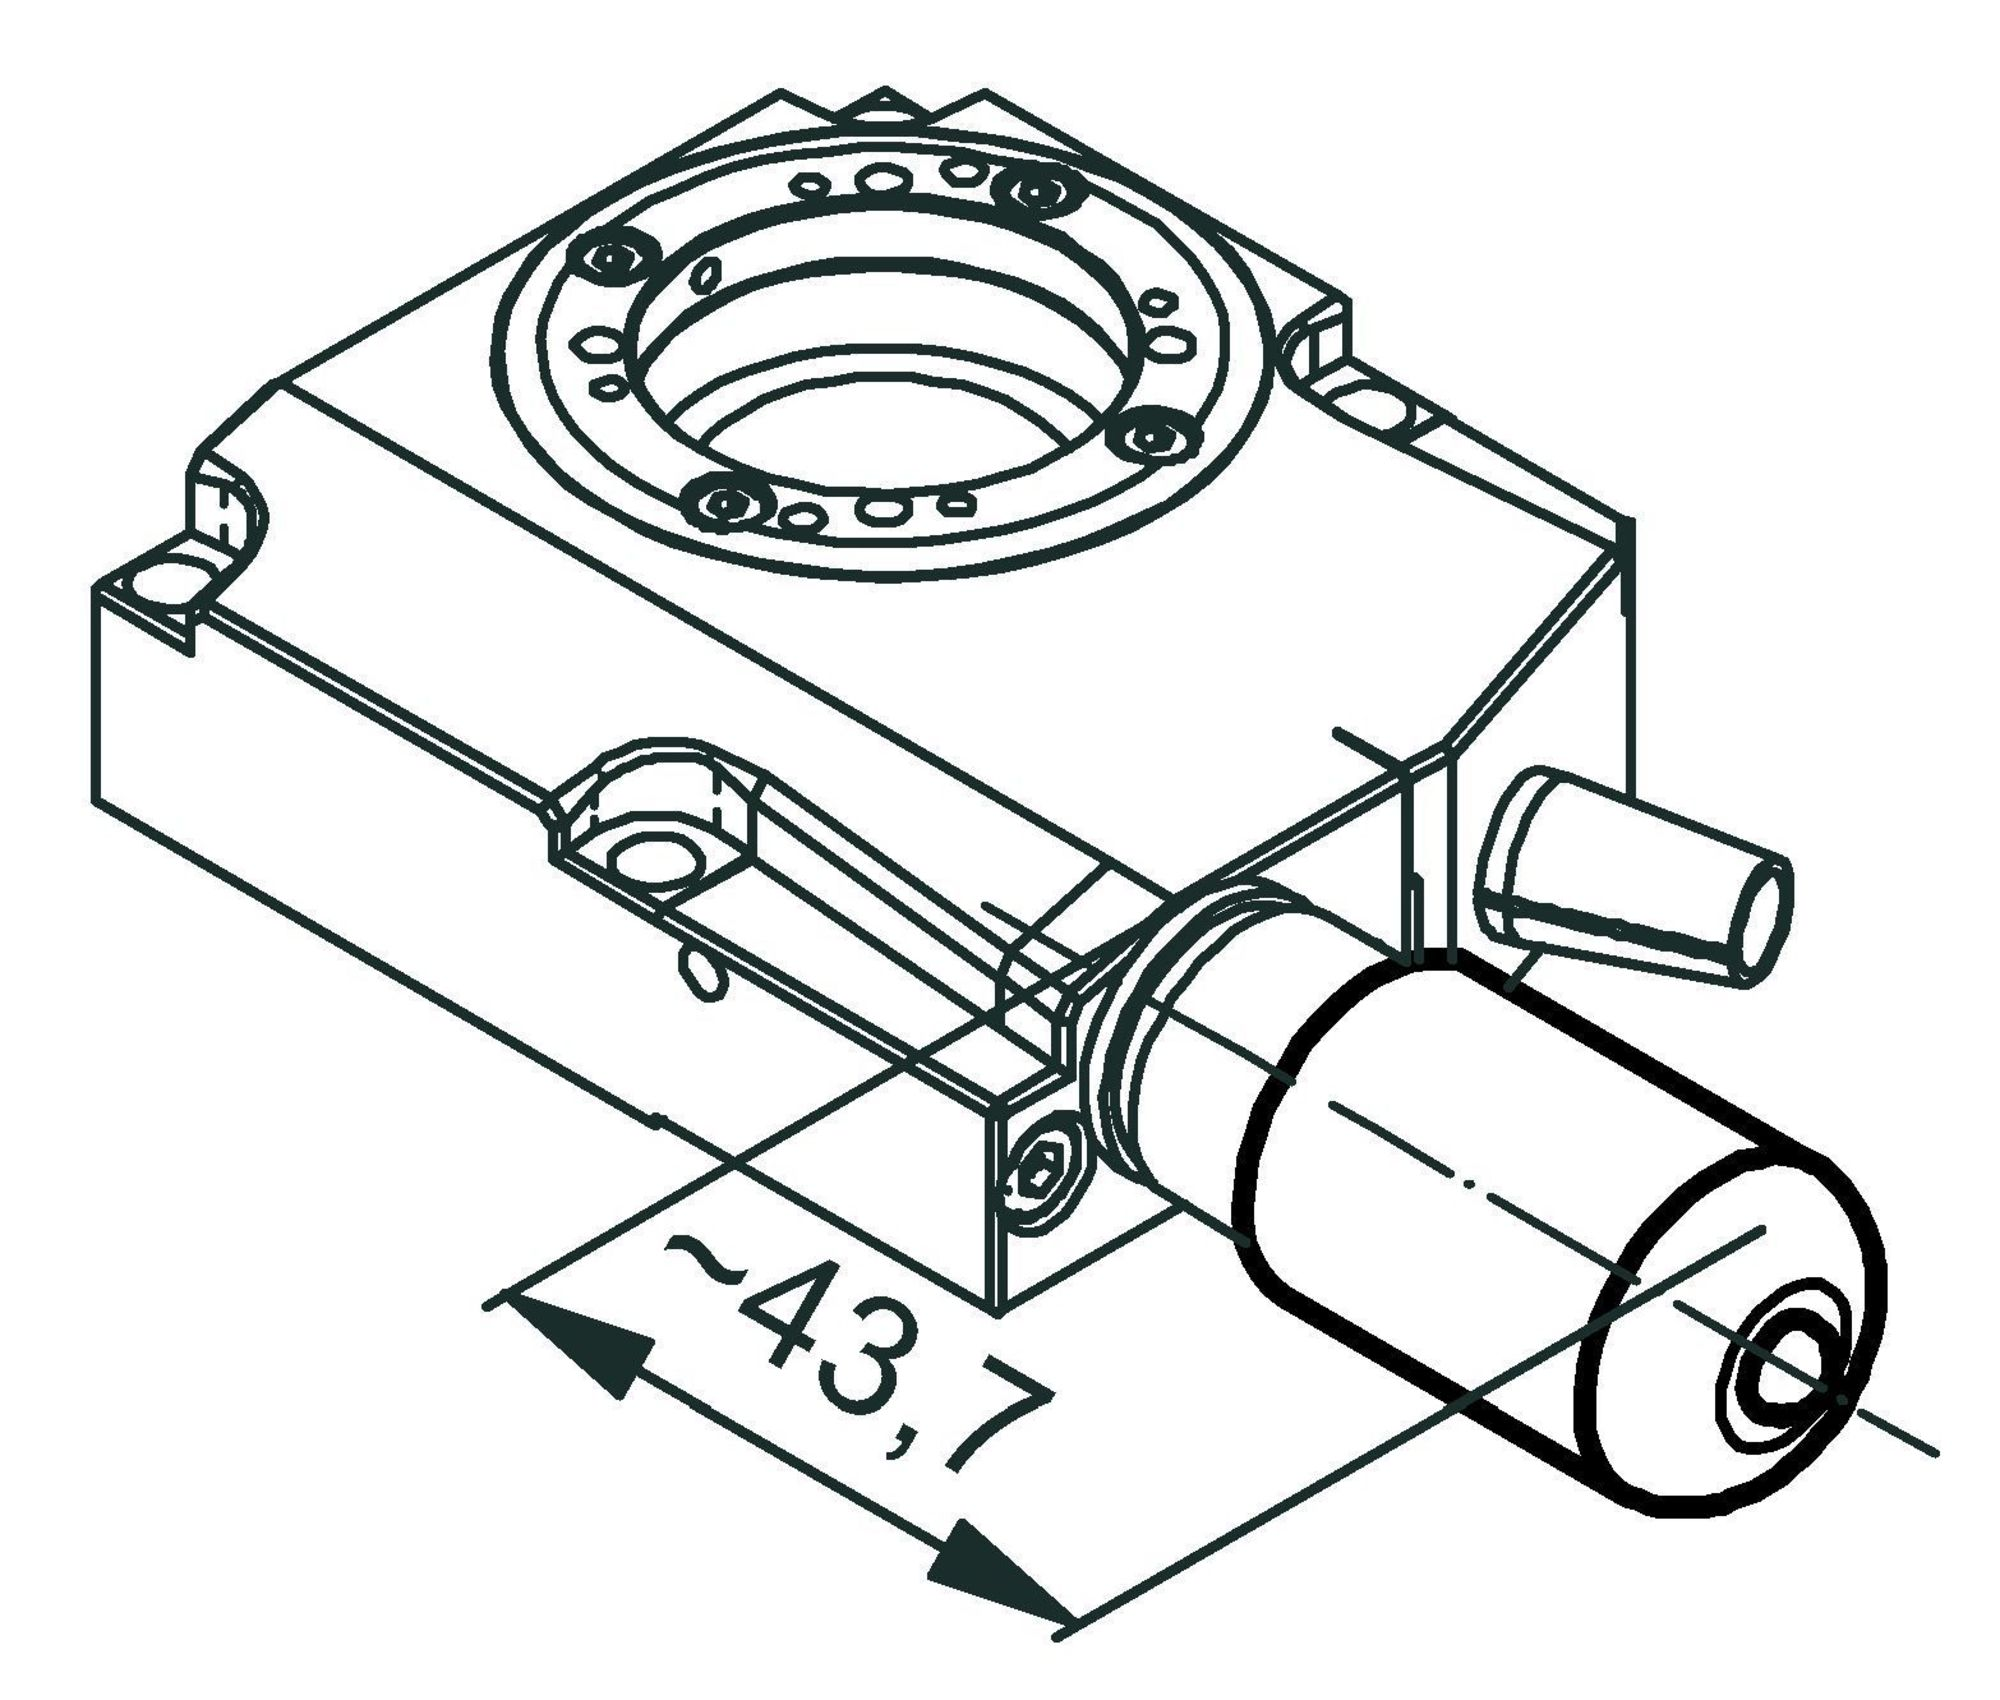 Rs 40 Compact Rotation Stage